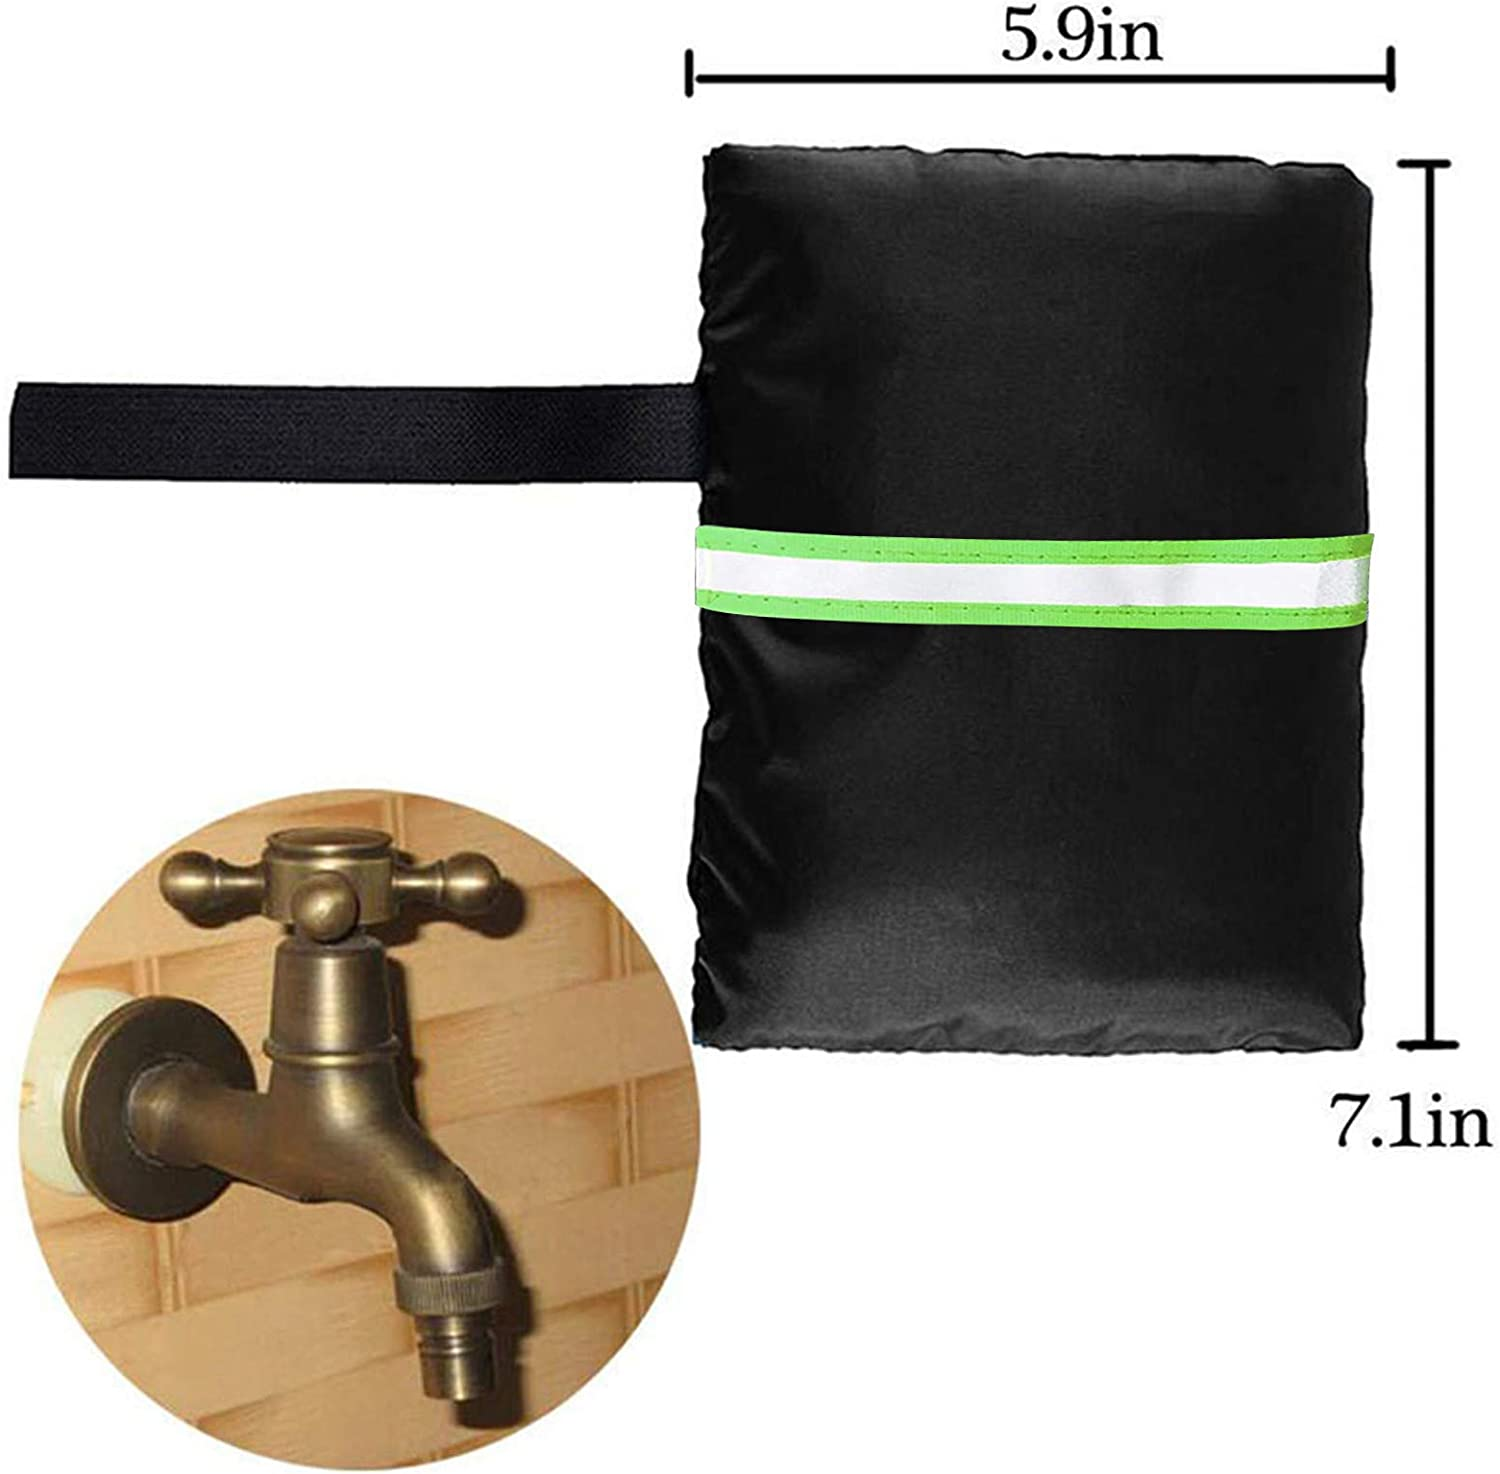 Black Kybers/_Supplies of Home Outdoor Faucet Cover Socks Reusable Anti-Freeze Hose Bib for Winter Freeze Protection